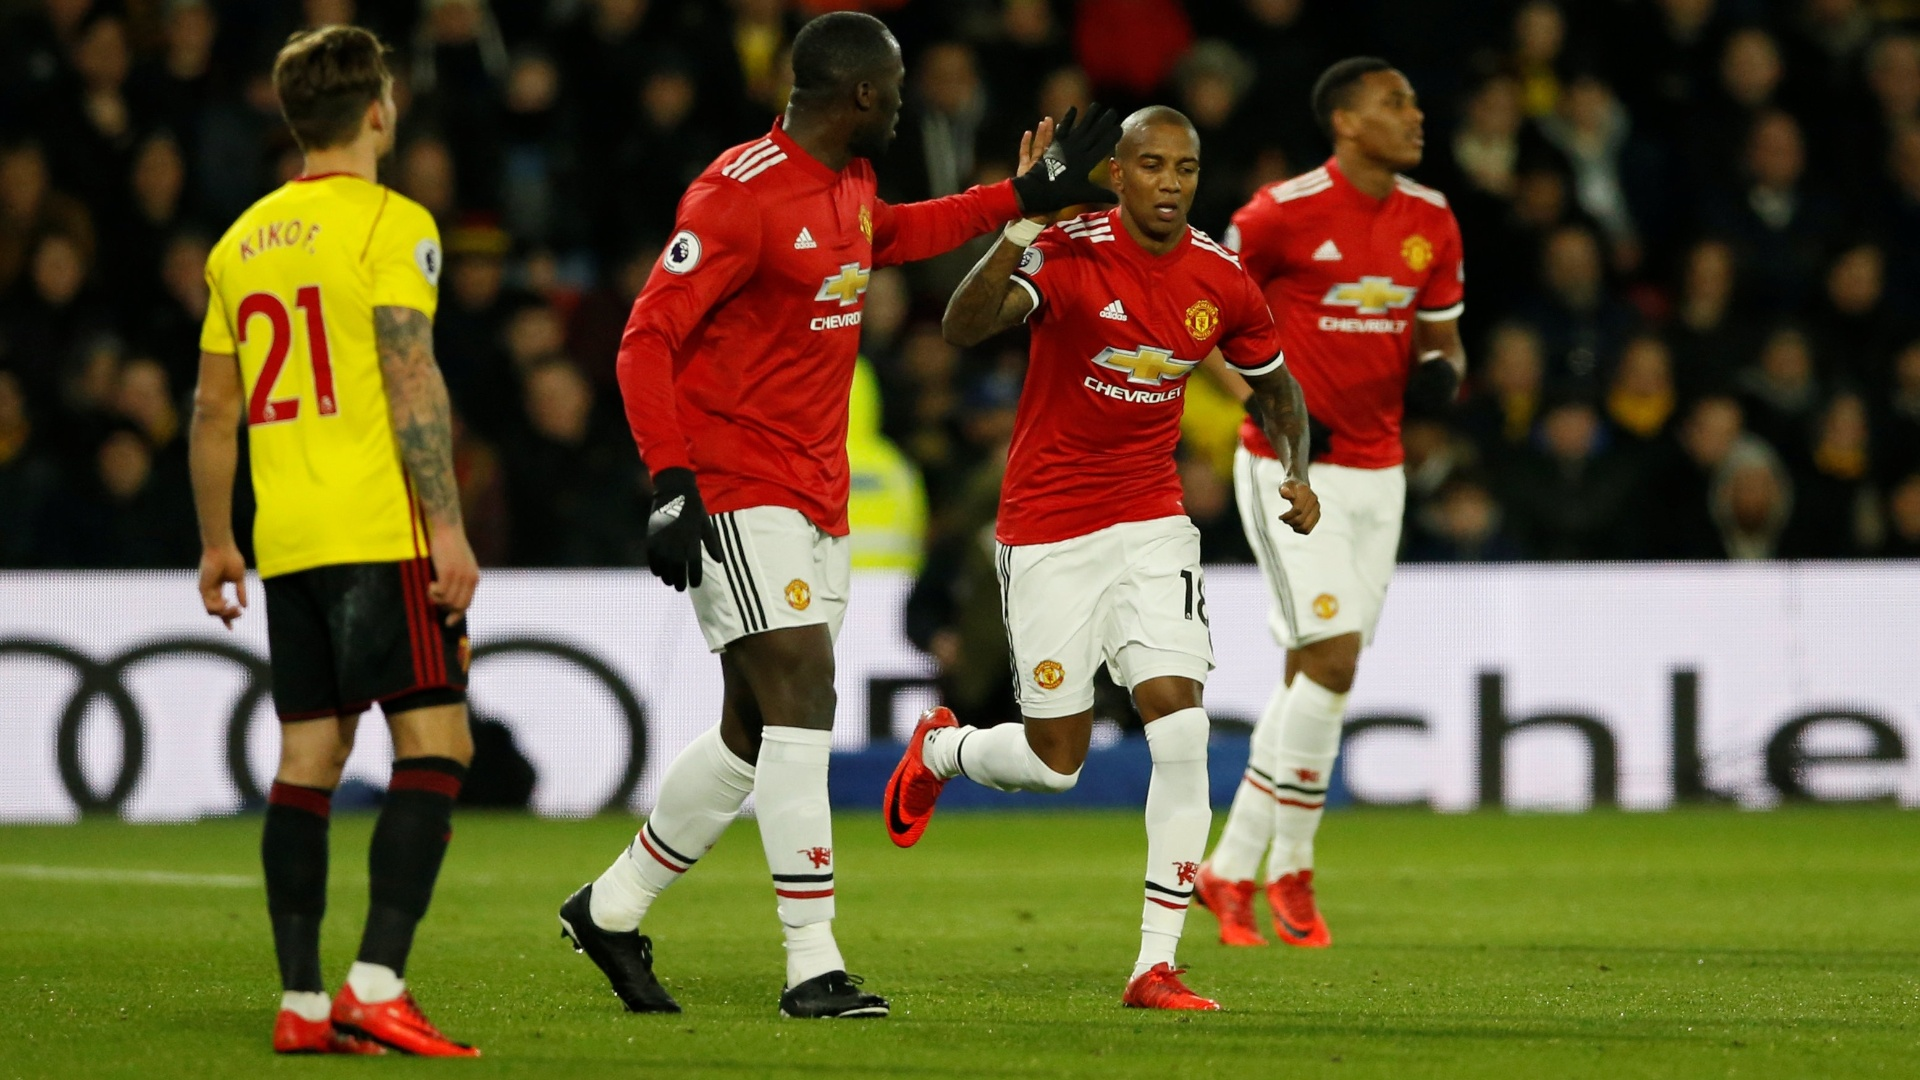 Ashley Young comemora os dois gols do United diante do Watford